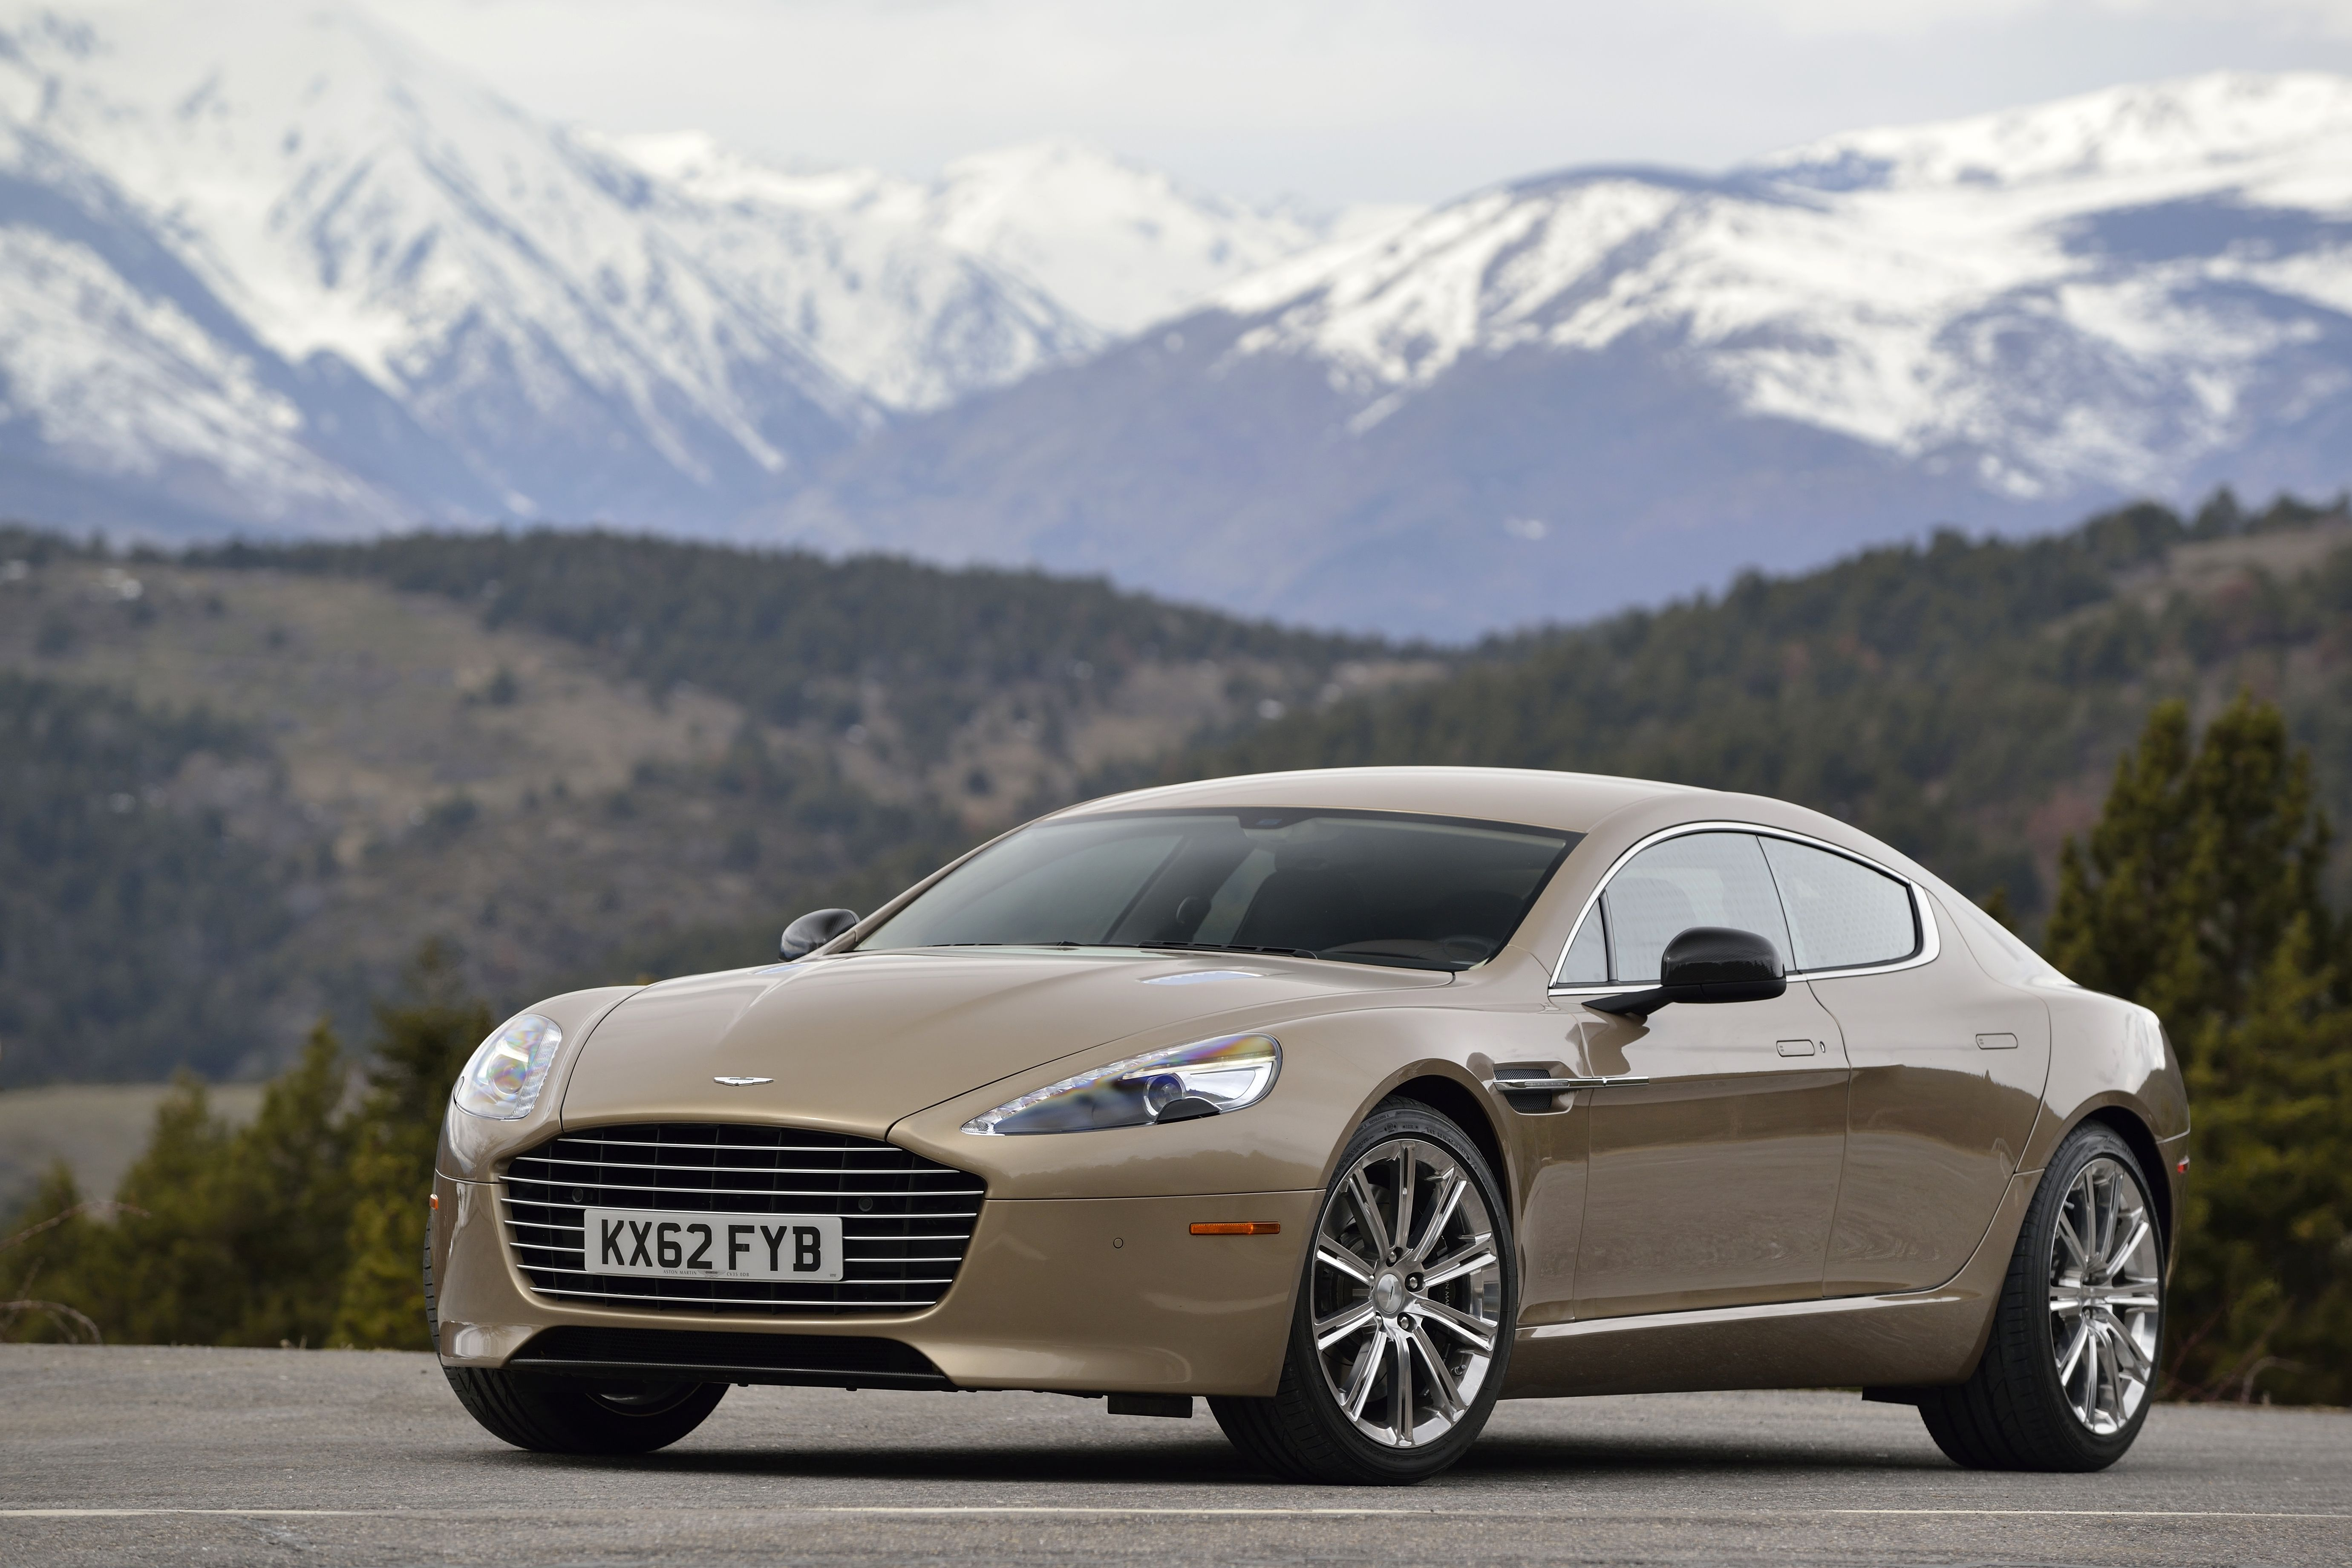 Aston Martin Rapide S The Worlds Most Beautiful  Door Sports Car Discover More At Www Astonmartin Com Cars Rapide S Astonmartin